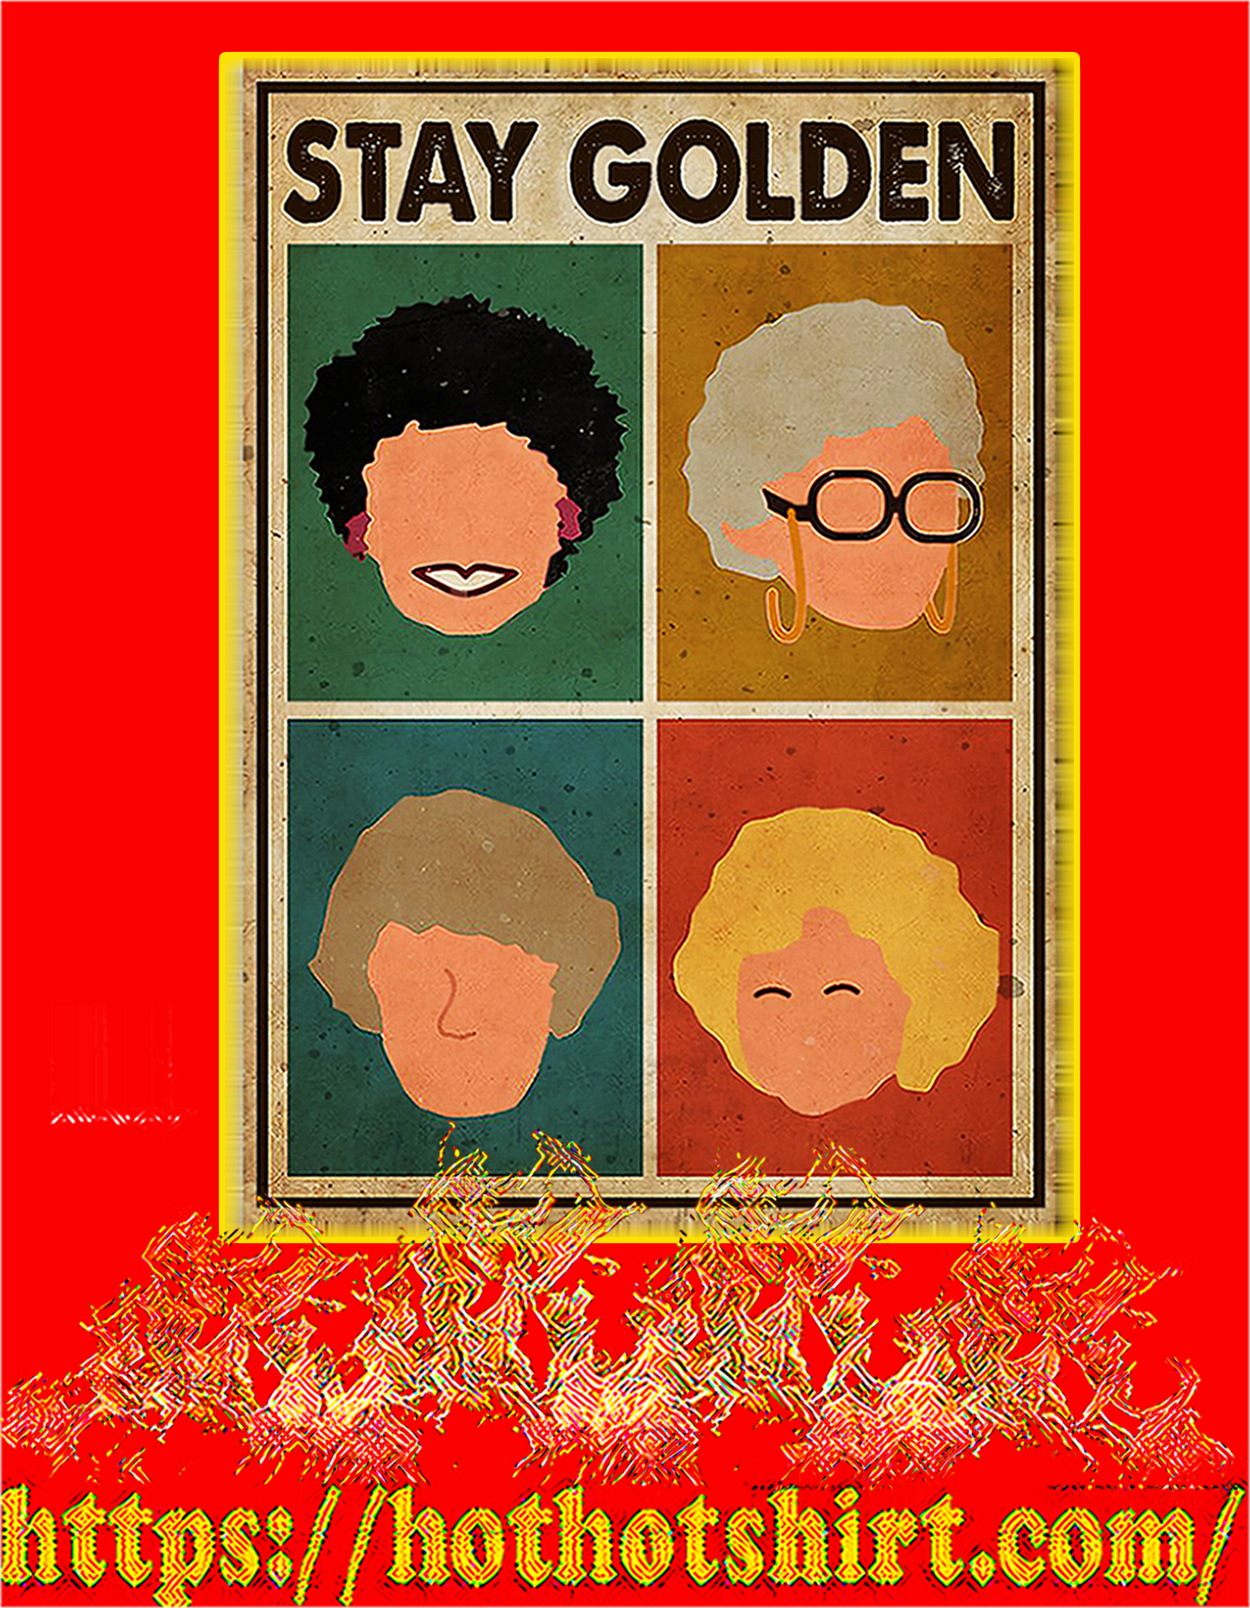 Stay golden poster - A3